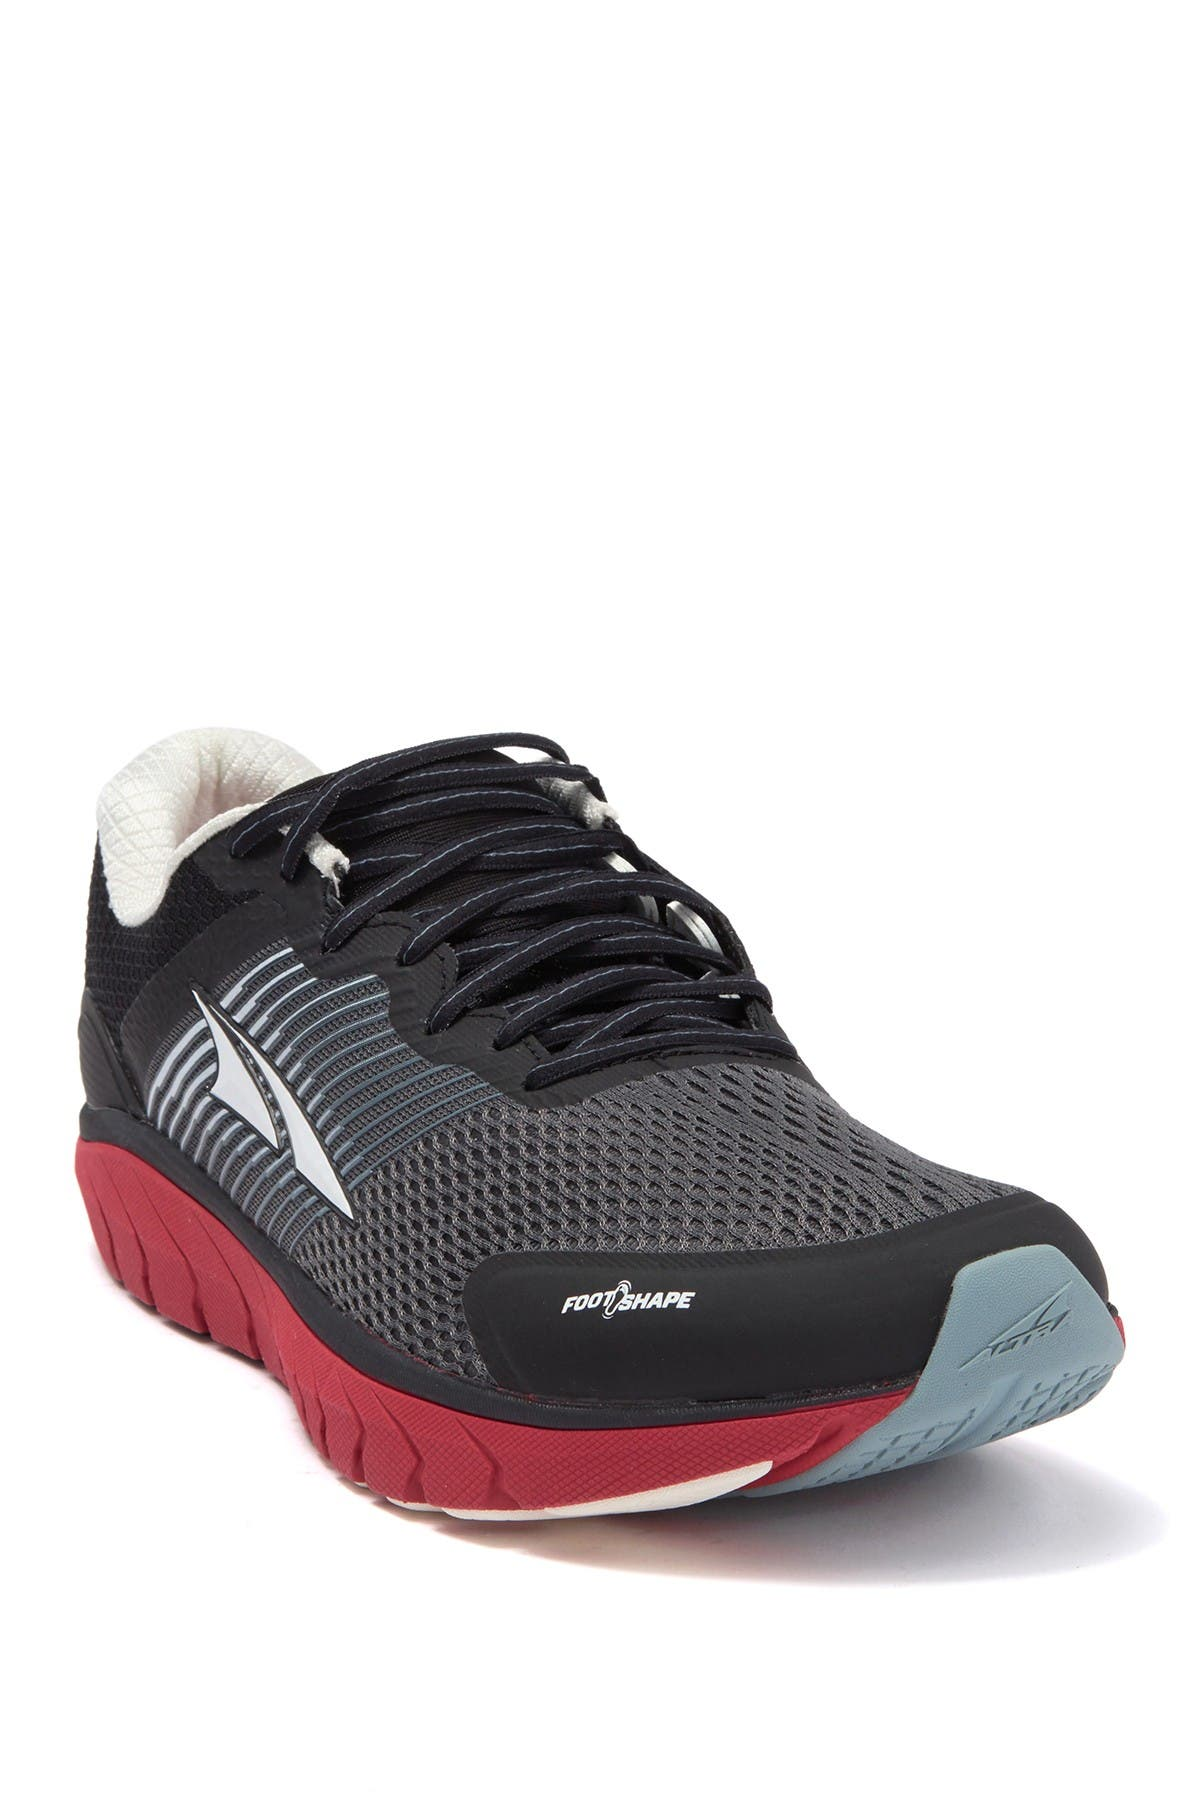 Image of ALTRA Provision 4 Running Sneaker